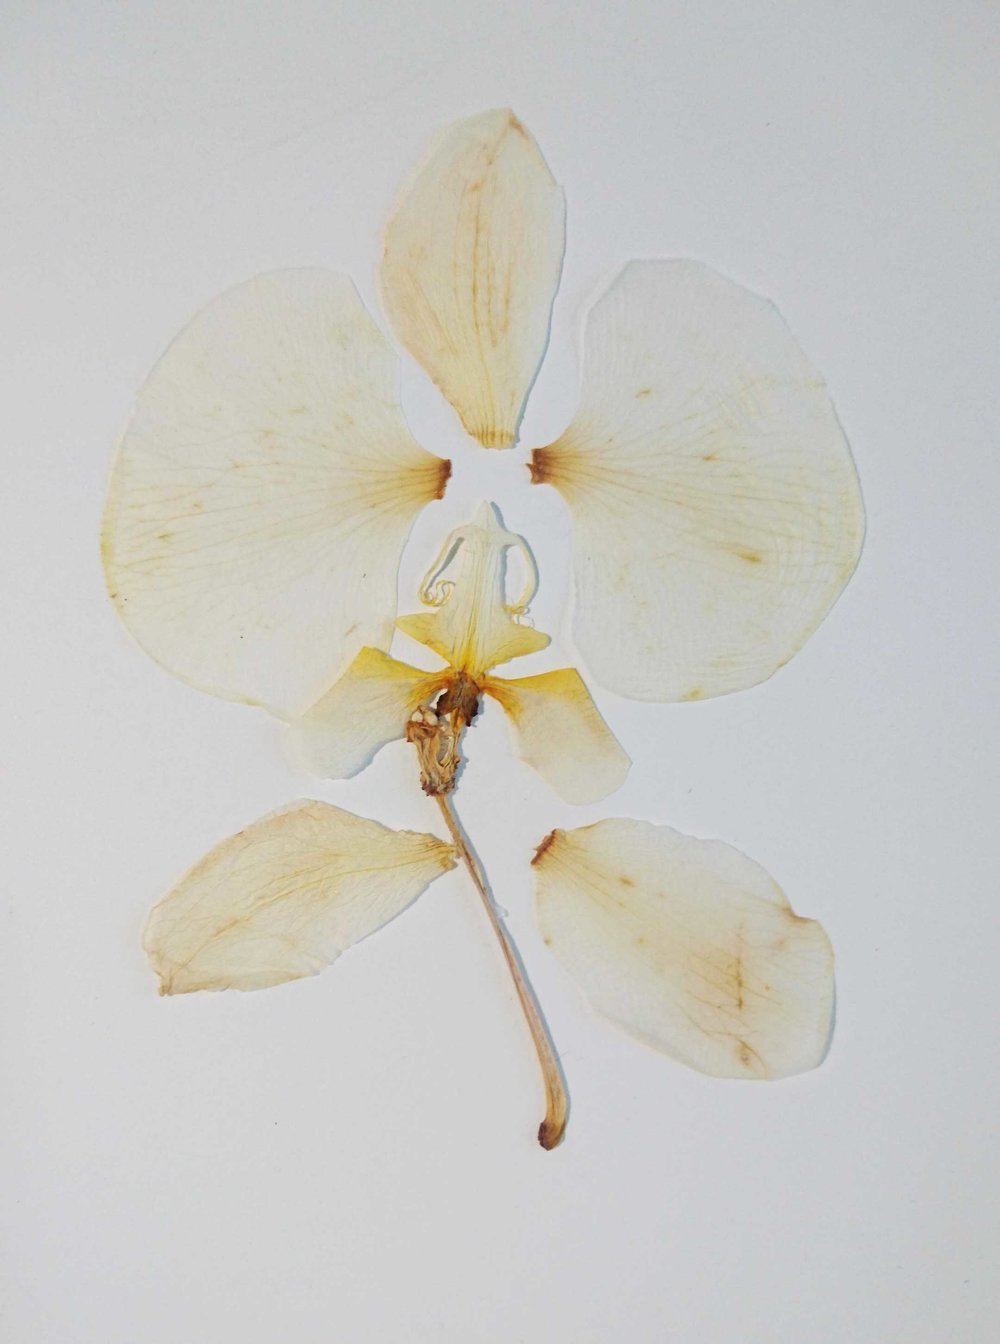 dried orchard petals - silk smooth - transparent - lightness of spirit